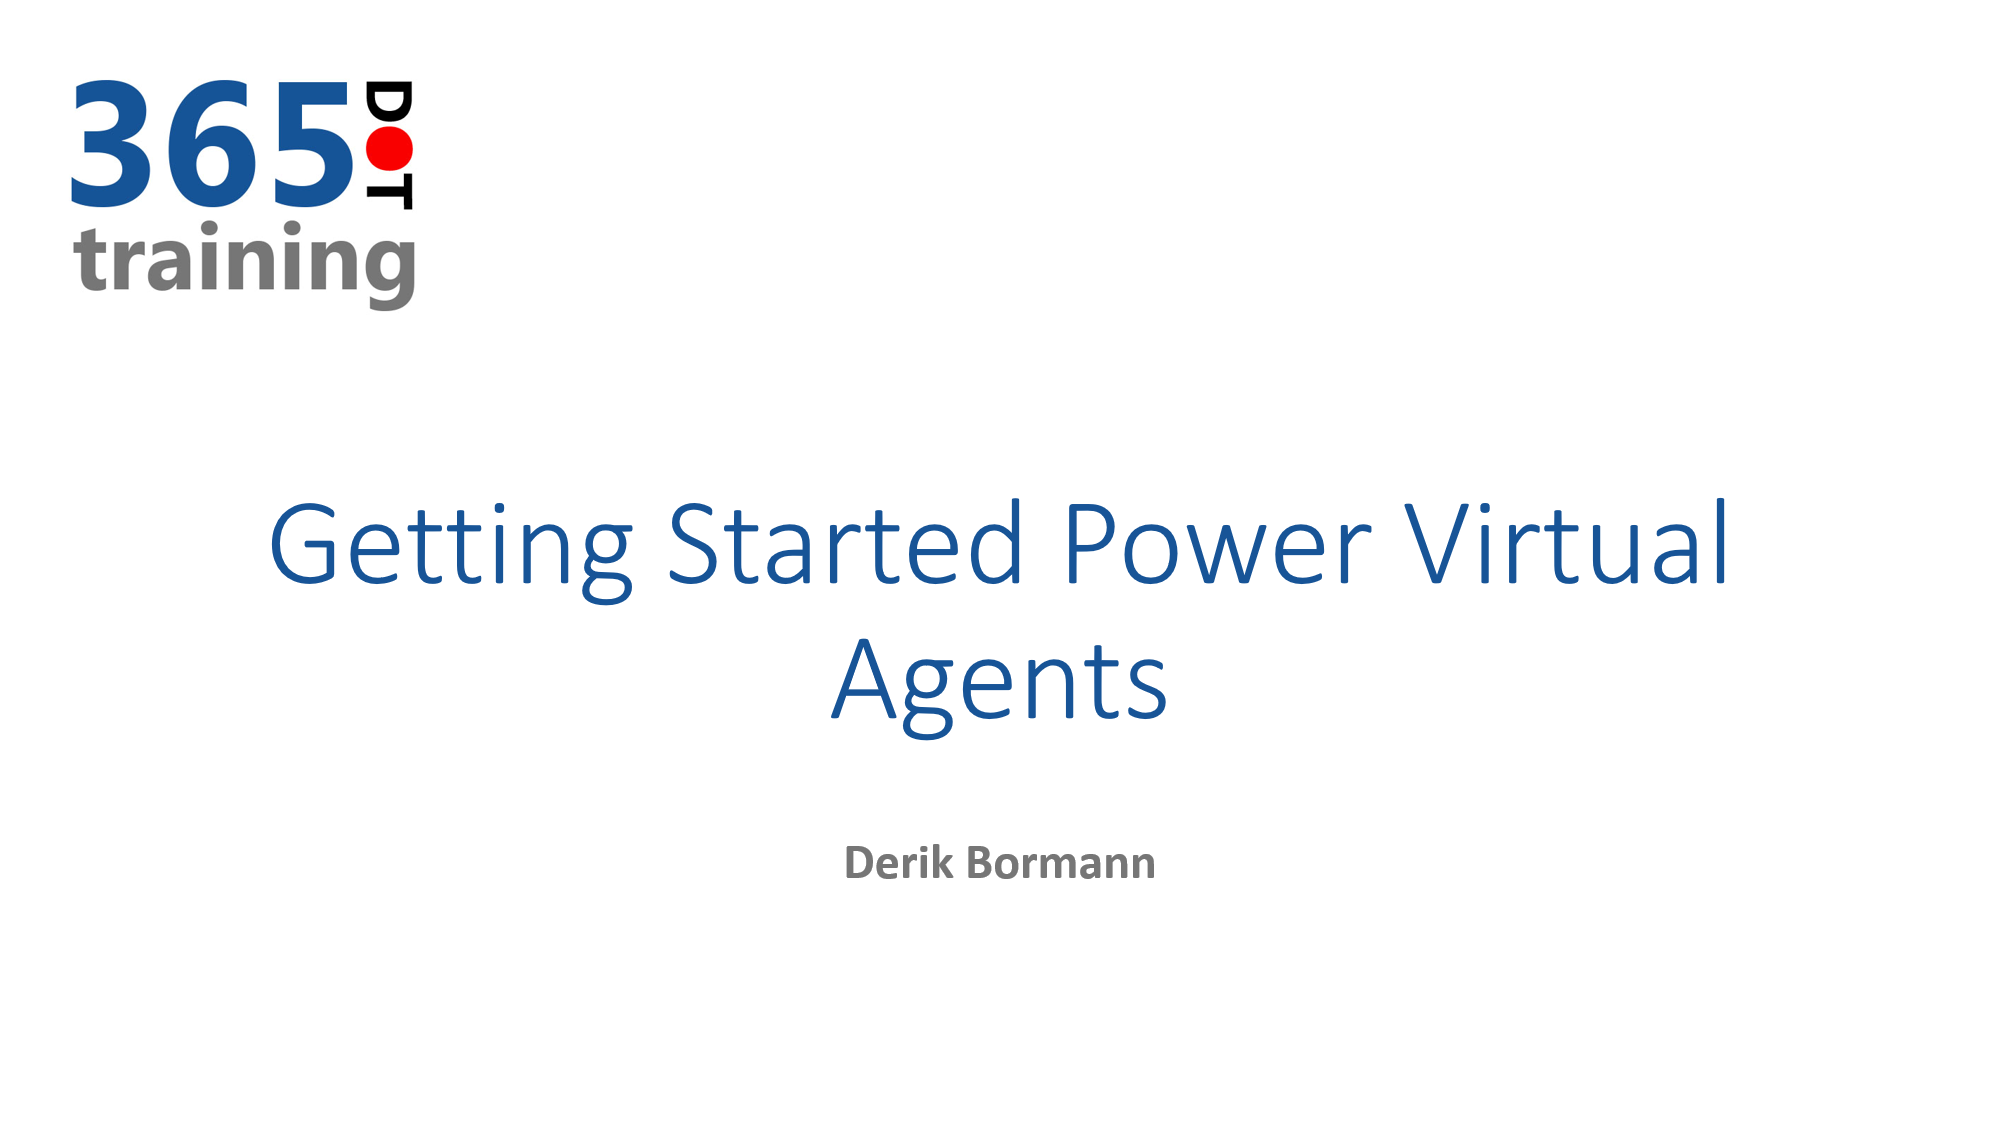 Getting started with Power Virtual Agents cover image